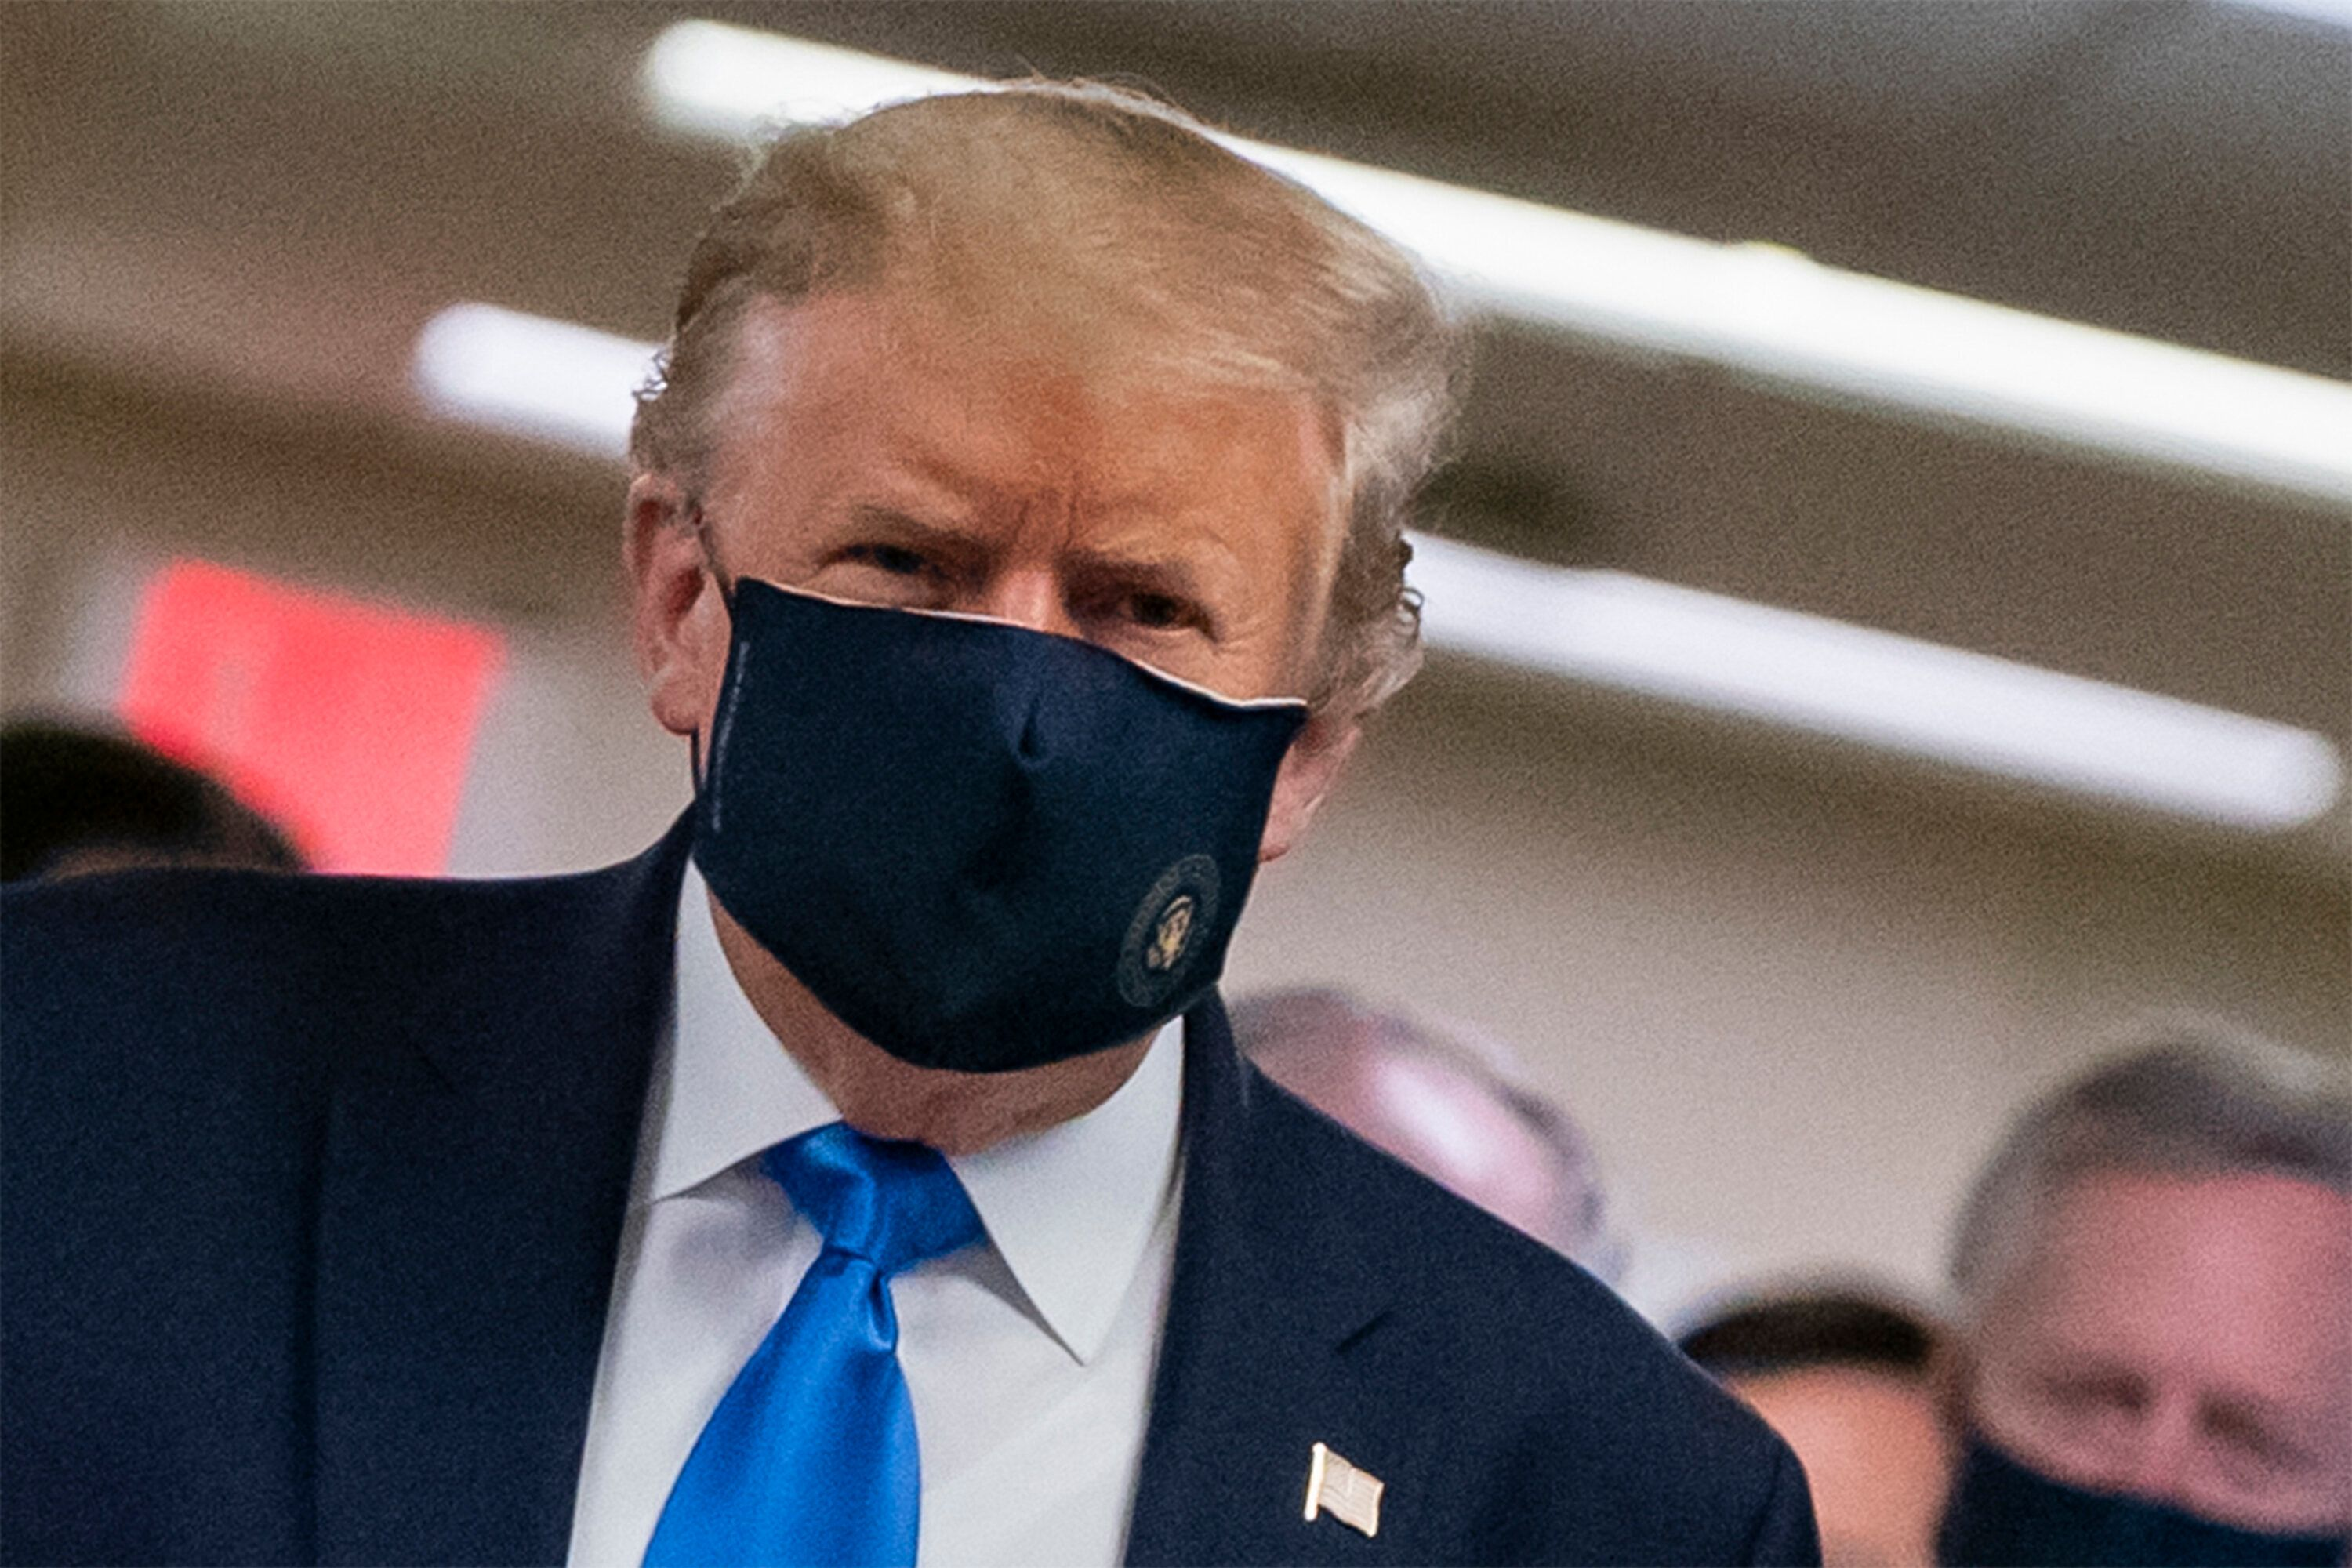 President Donald Trump finally wears a mask as he visits Walter Reed National Military Medical Center in Bethesda, Maryland,